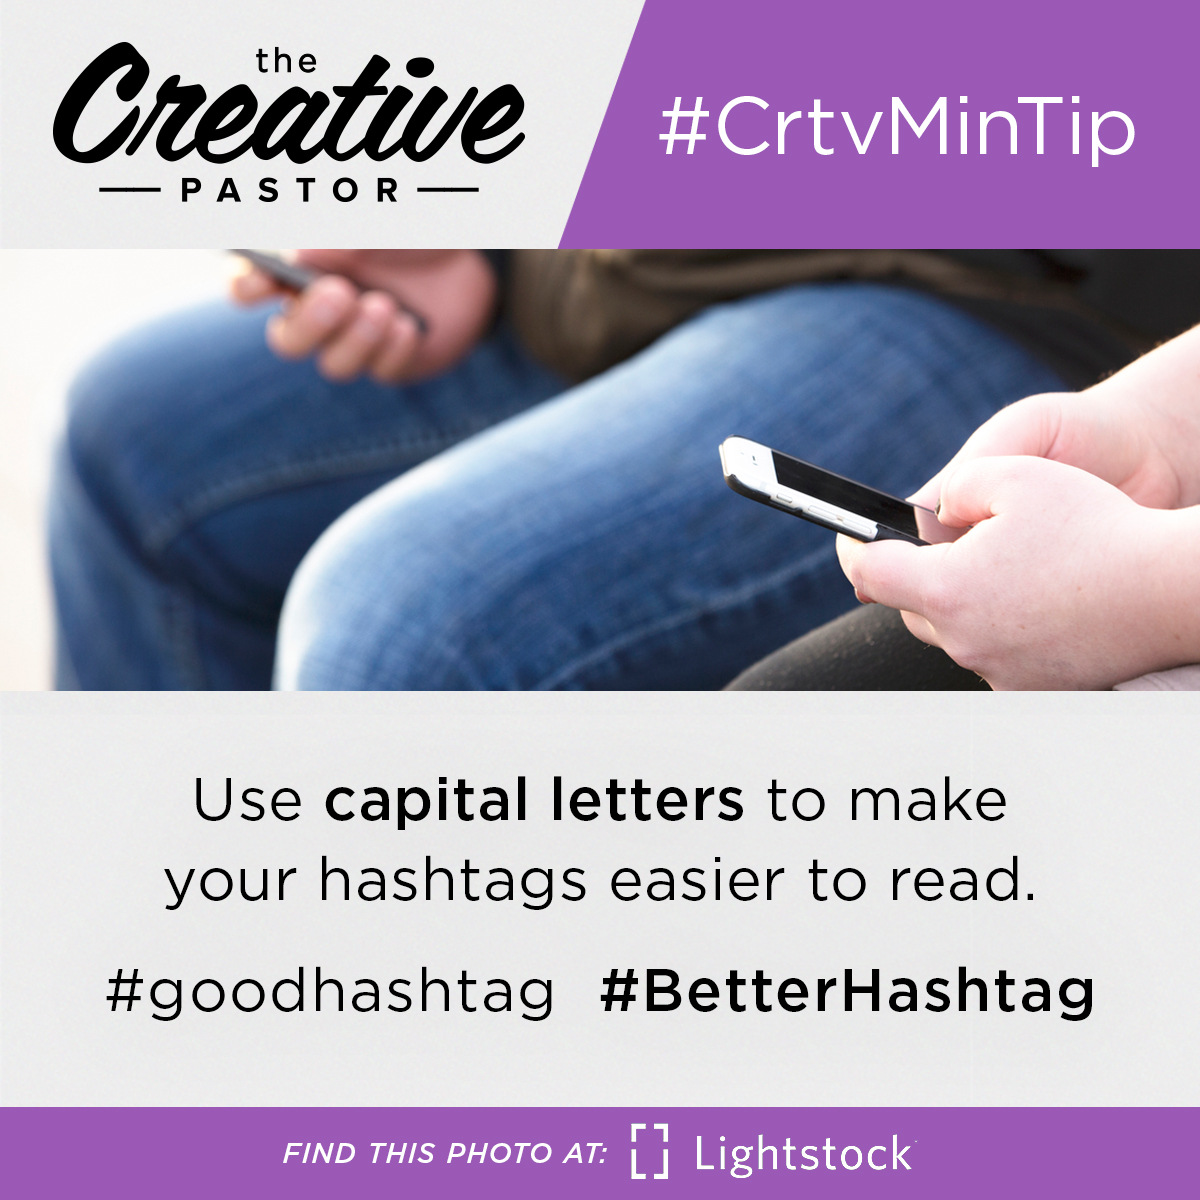 Use capital letters to make your hashtags easier to read. #goodhashtag #BetterHashtag